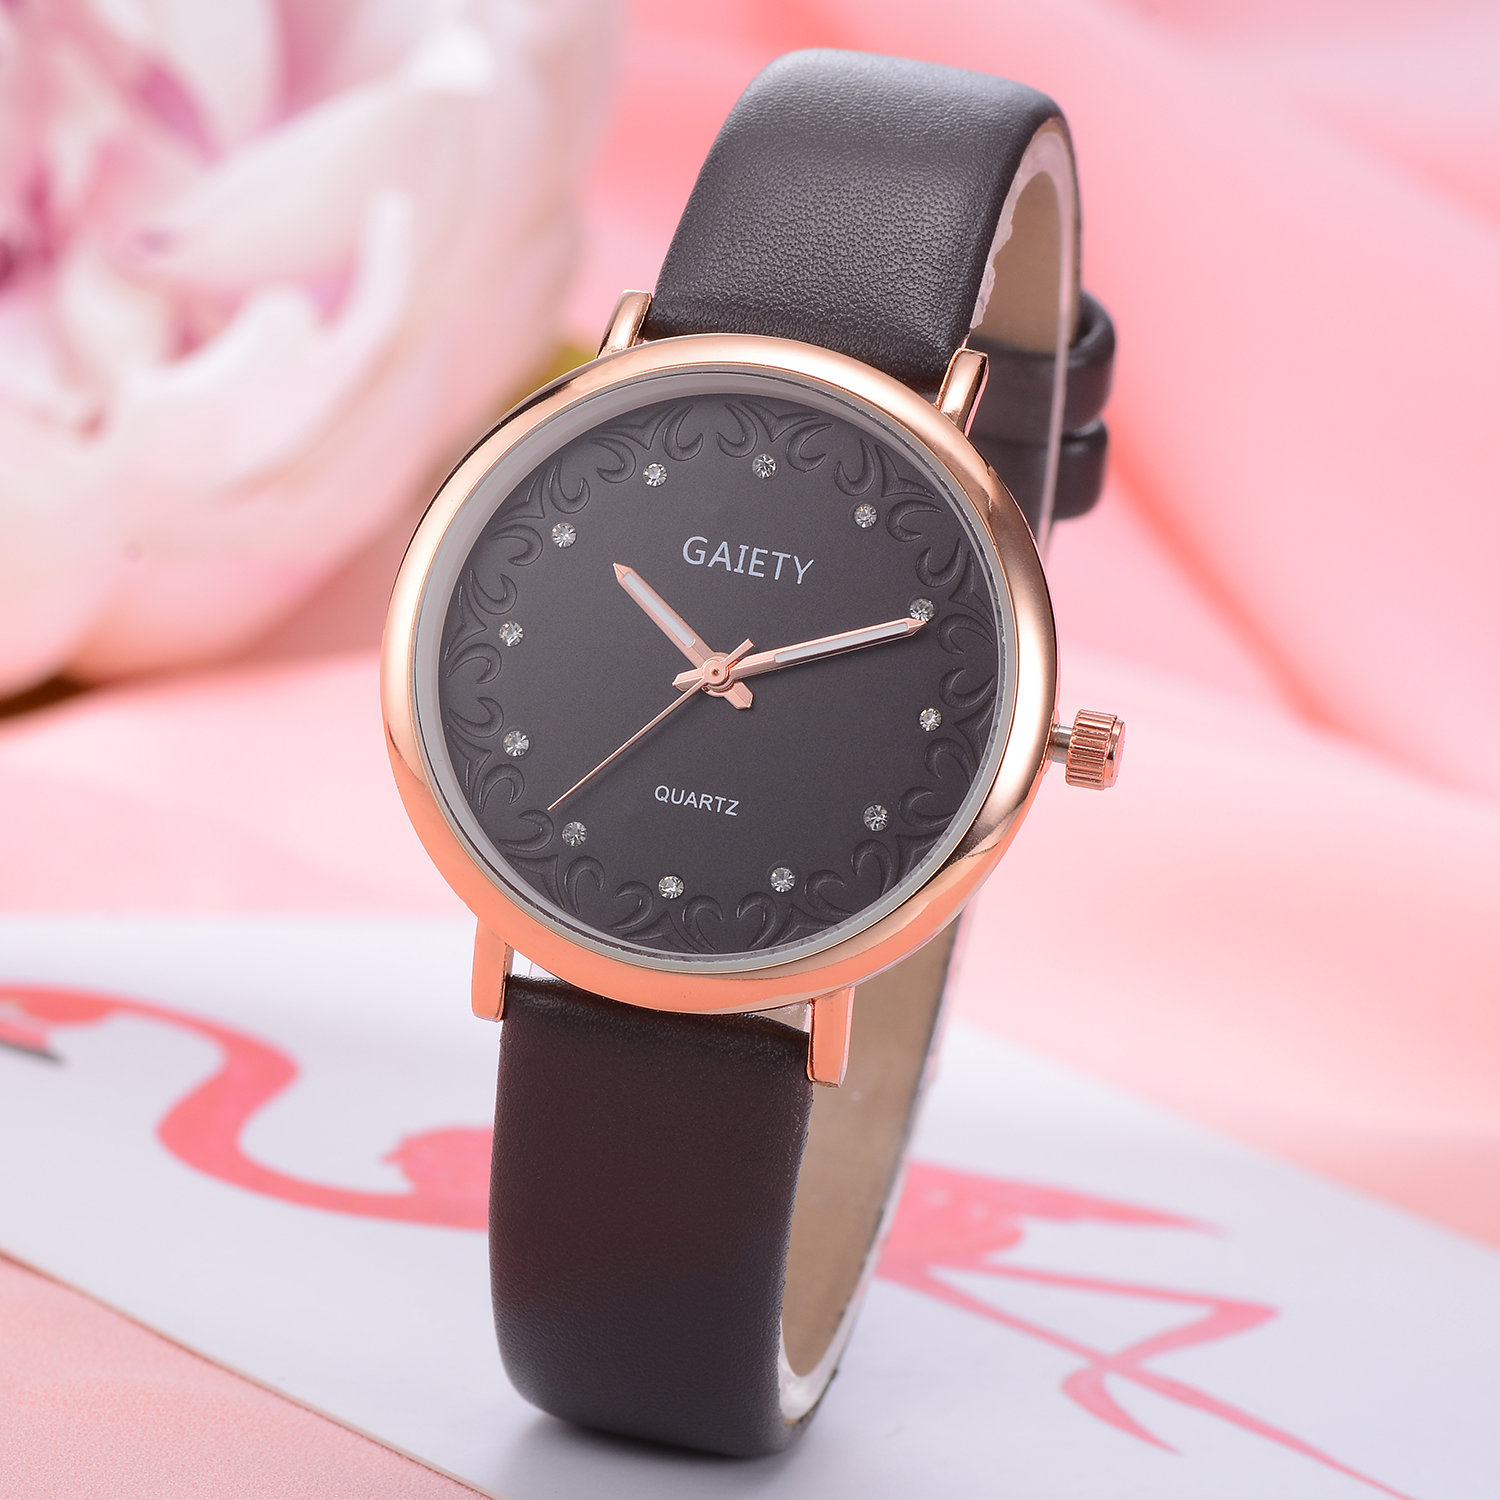 casual dress women vintage sport watches gaiety rose quartz black leather s in clock from class brand luxury item fashion outside watch